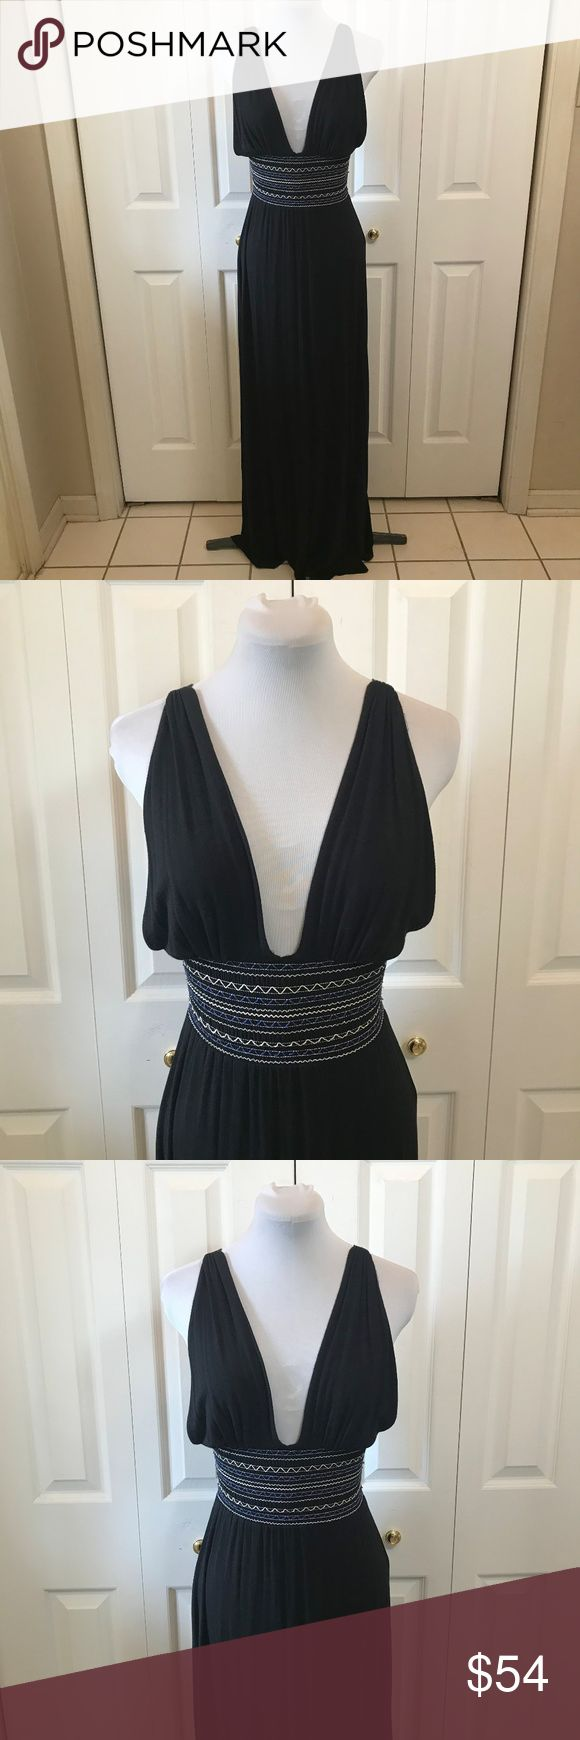 """Aqua Black Maxi Dress sz M from Bloomingdales Aqua Black Maxi Dress sz M from Bloomingdales Cross Over Back Measurements are an approximation as its very hard to measure this style accurately Bust: 26"""" Elastic Waist: 20"""" unstretched Hip: 40"""" Length: 62"""" Aqua Dresses Maxi"""